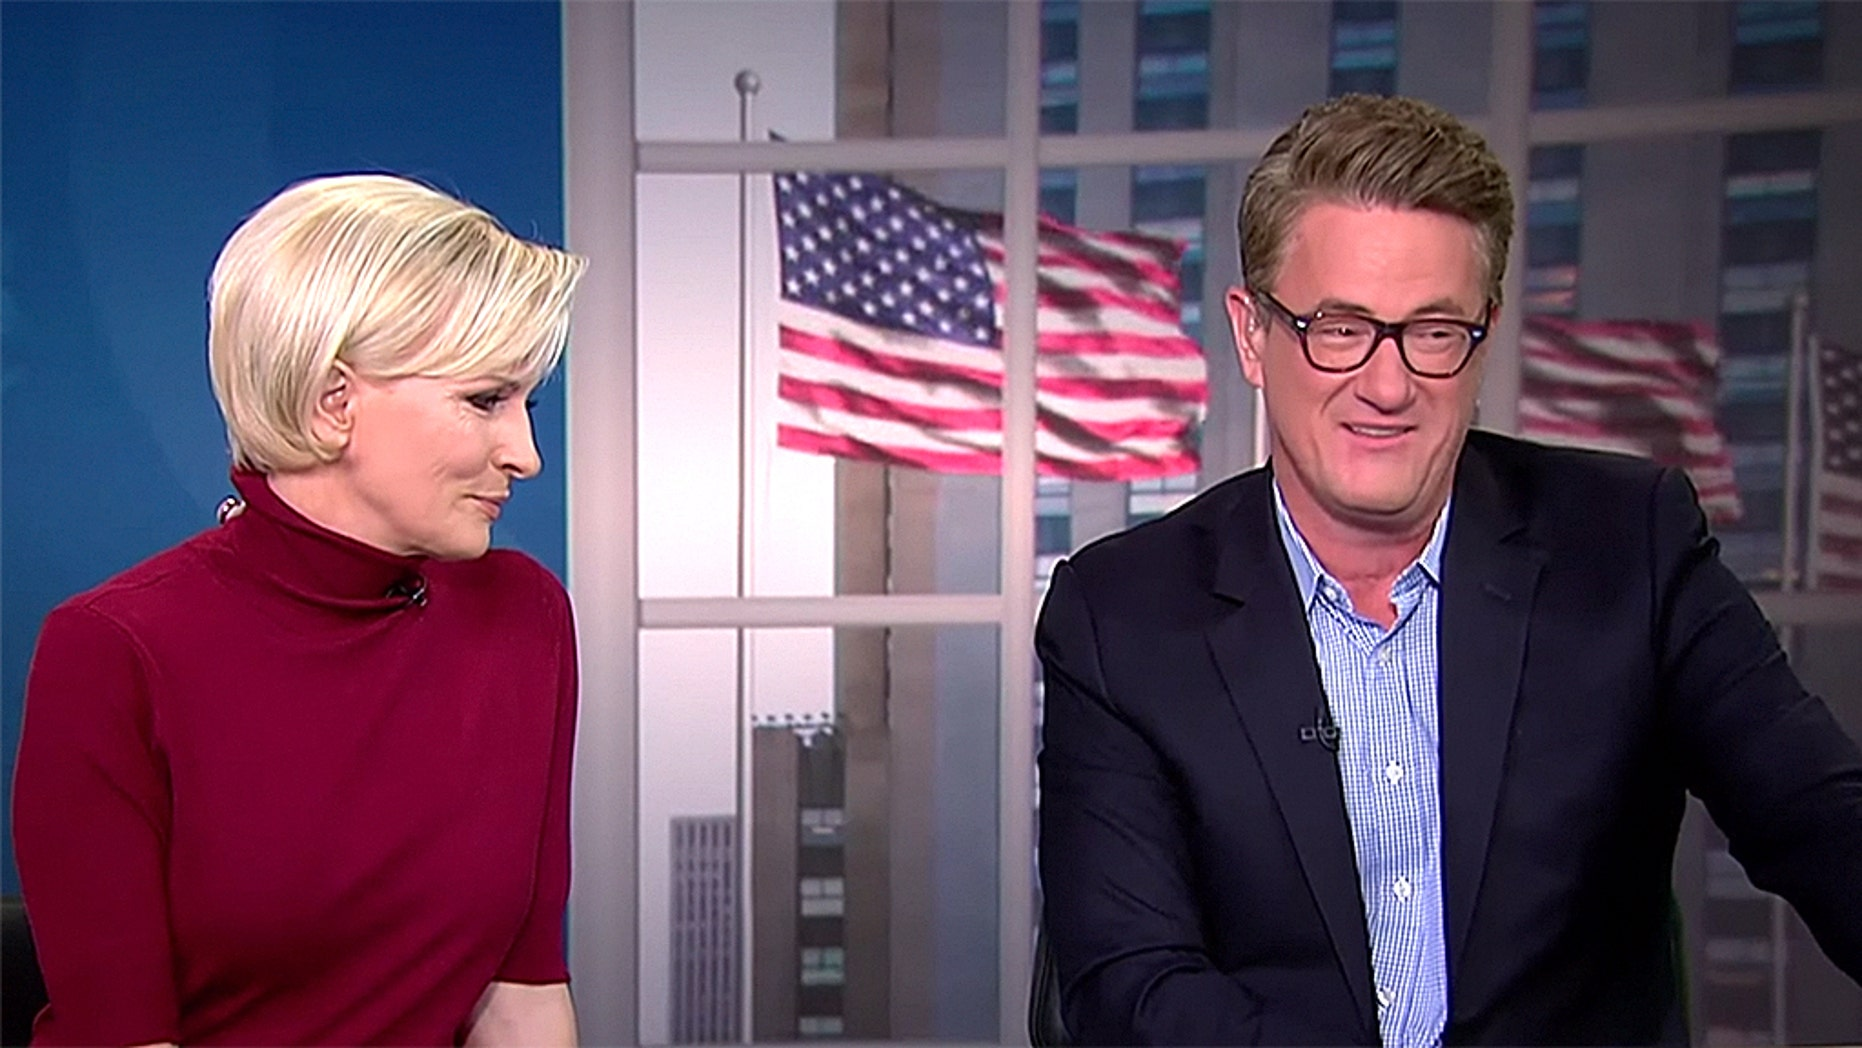 MSNBC host Joe Scarborough questioned the mental health of President Trump on Friday.